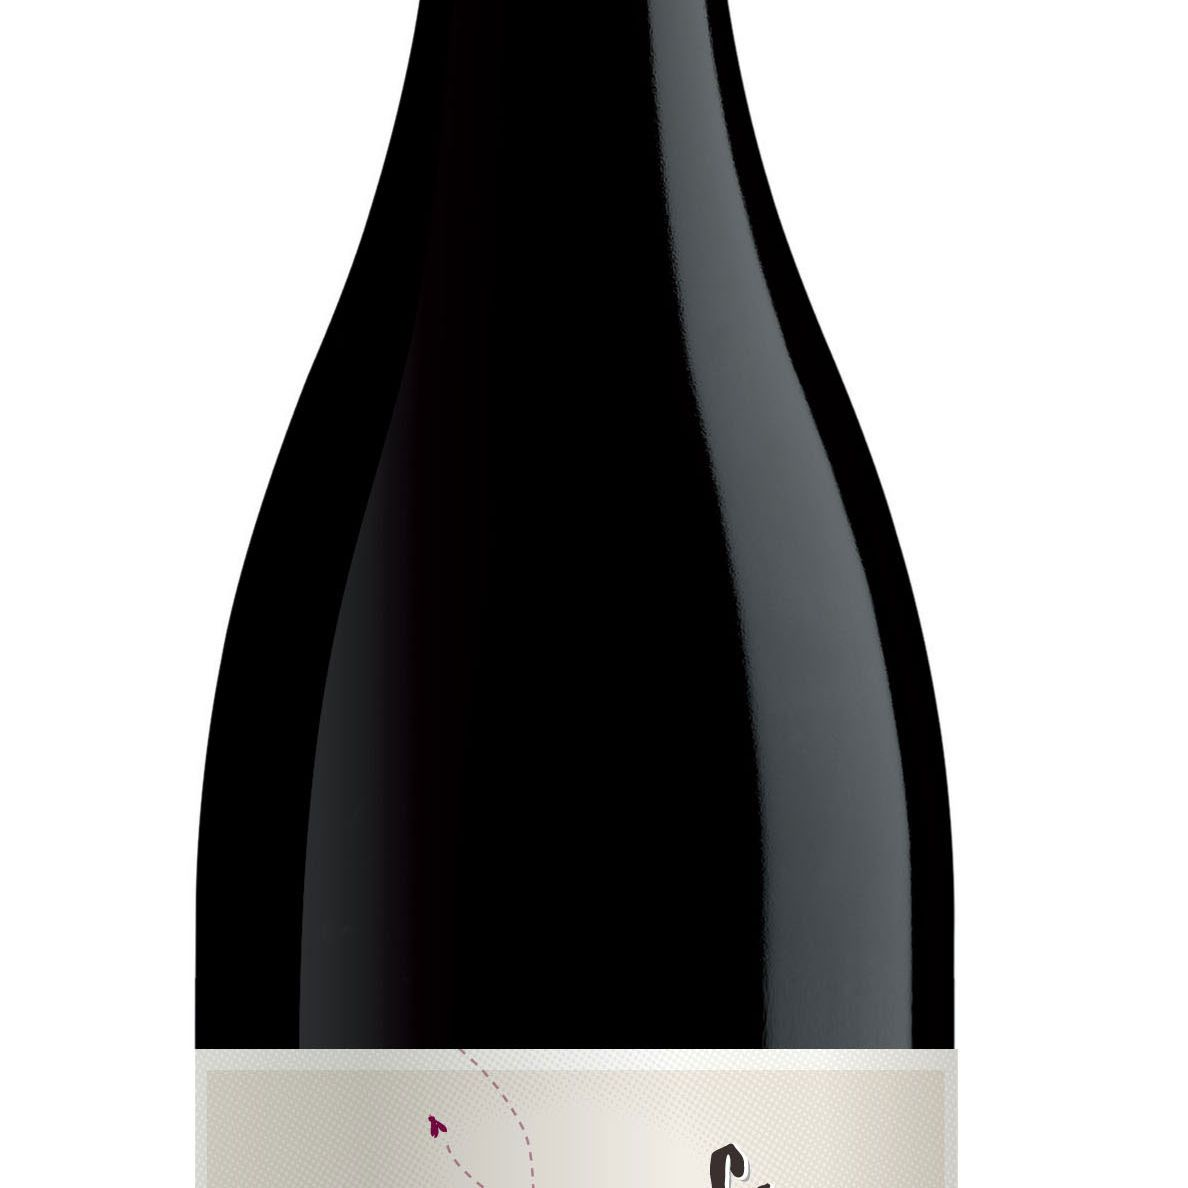 Shoofly Shiraz